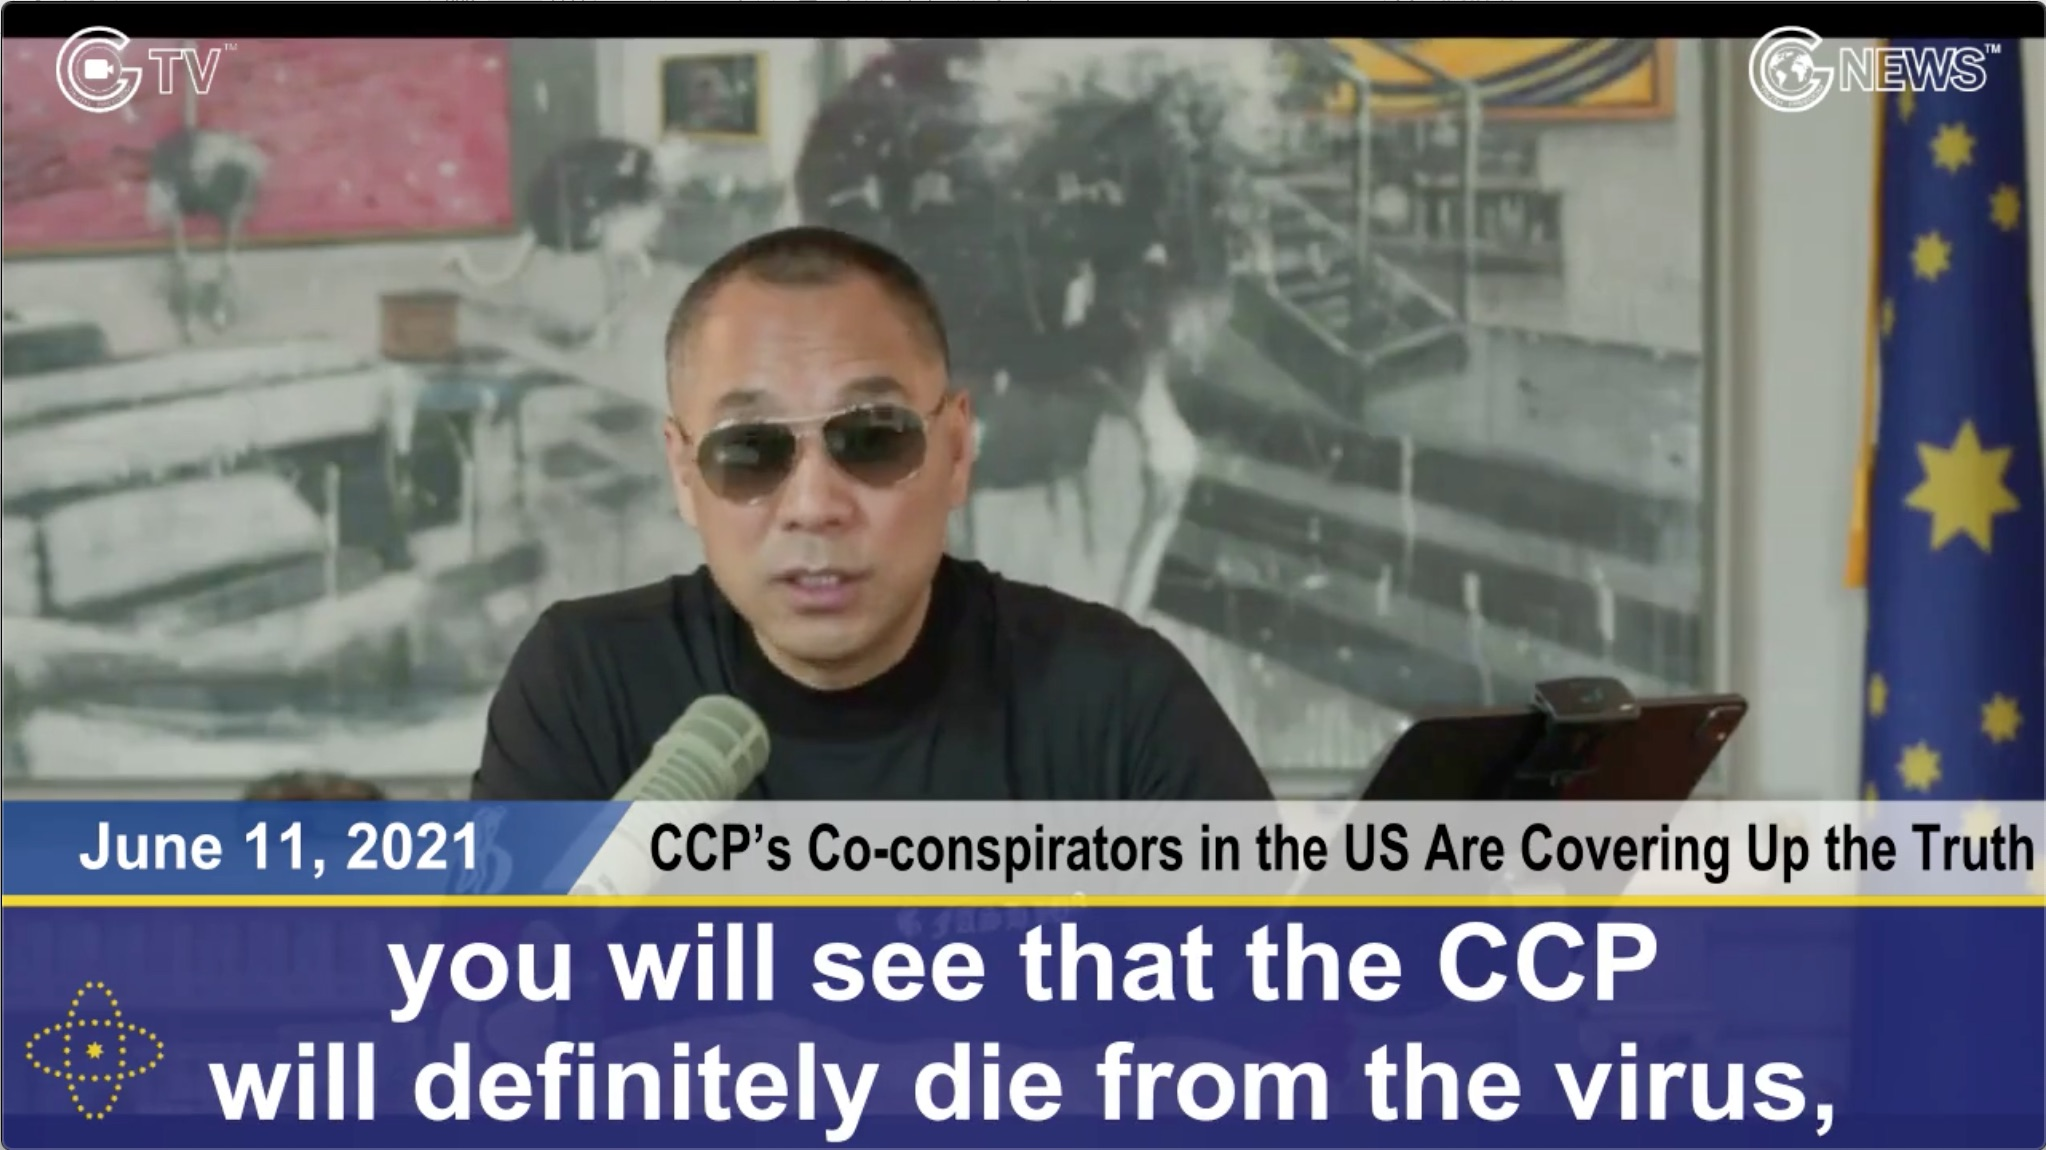 You are currently viewing CCP's Co-conspirators in the US Are the Force Covering Up the Truth About the Virus – GNEWS